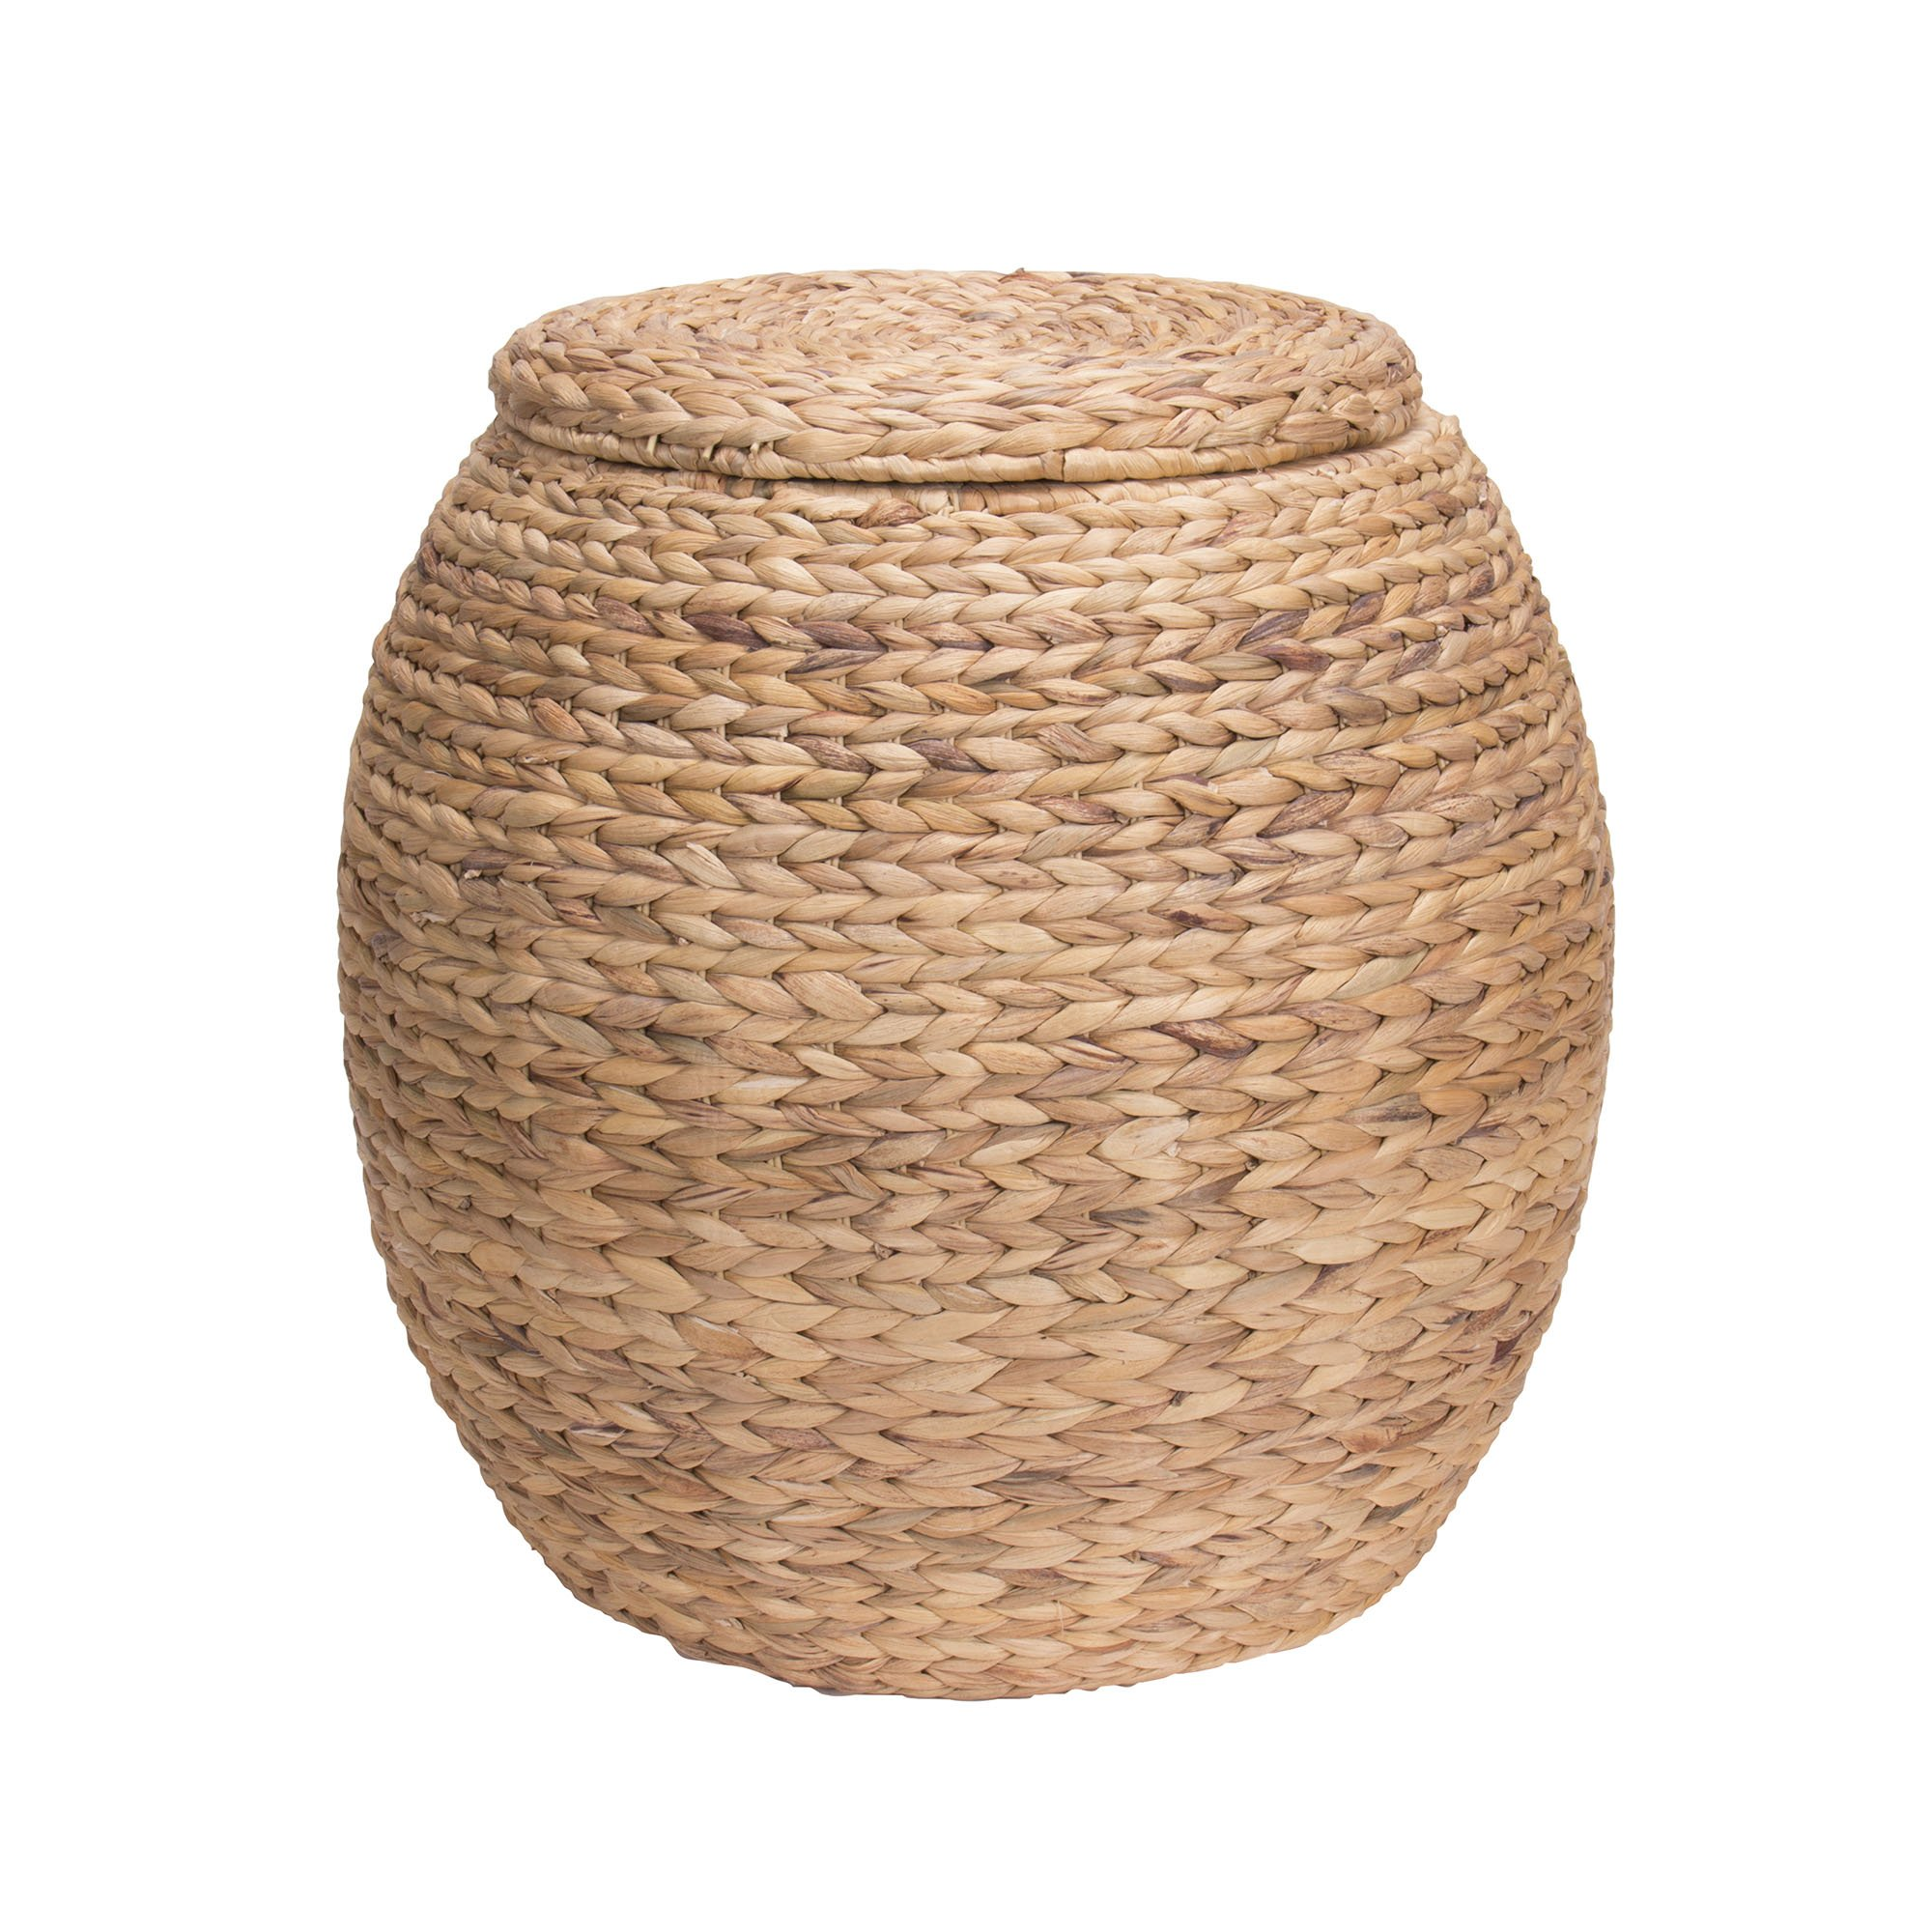 household essentials large round water hyacinth wicker storage basket with lid. Black Bedroom Furniture Sets. Home Design Ideas